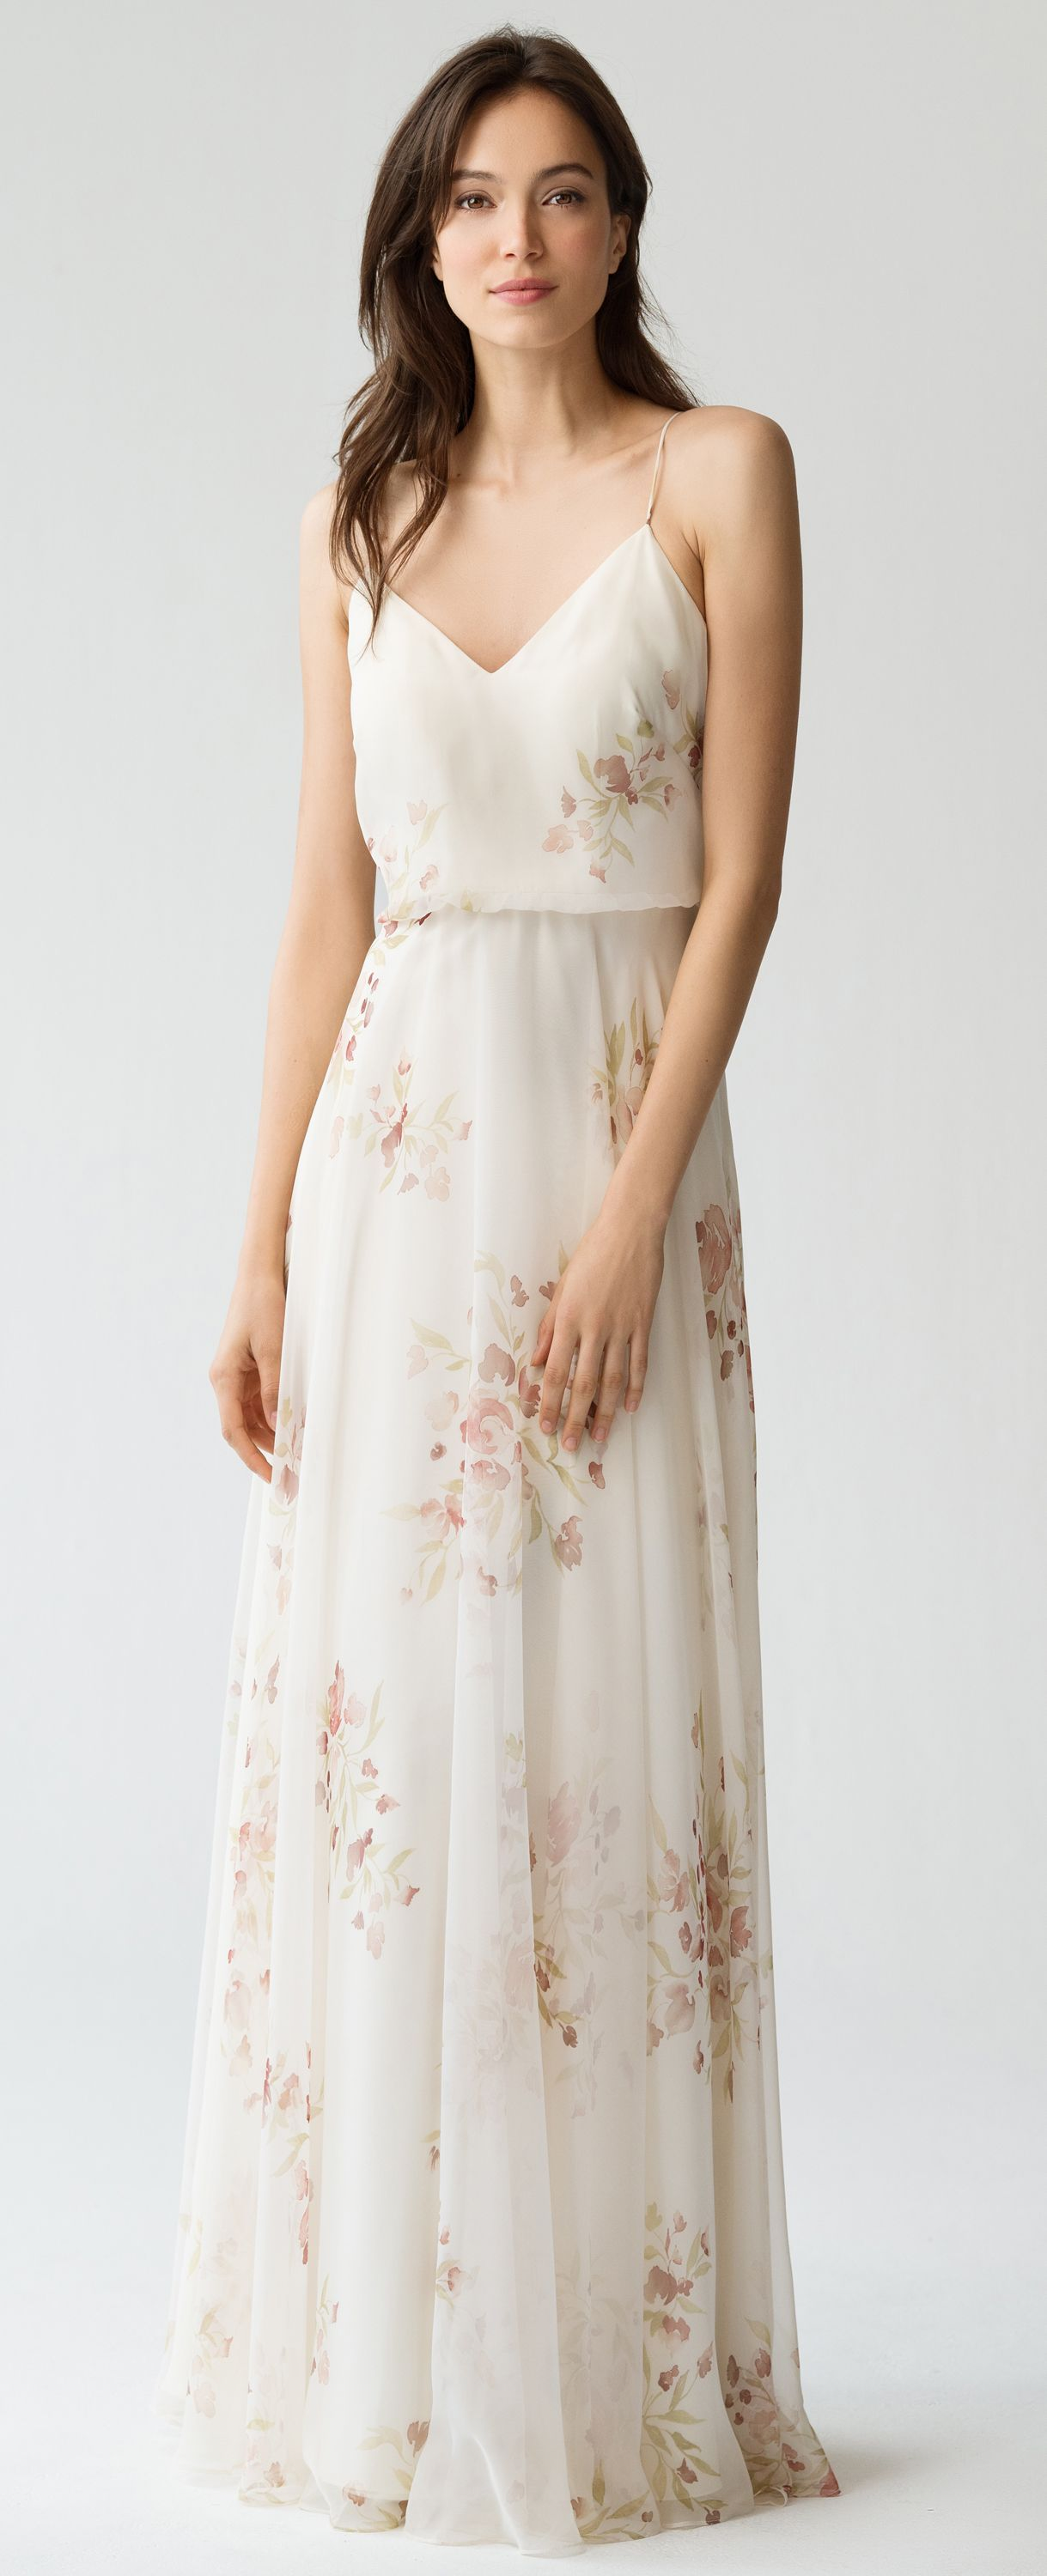 Inesse Bridesmaid Dress in Ivory Soft Rose Eden Bouquet Floral Print ...